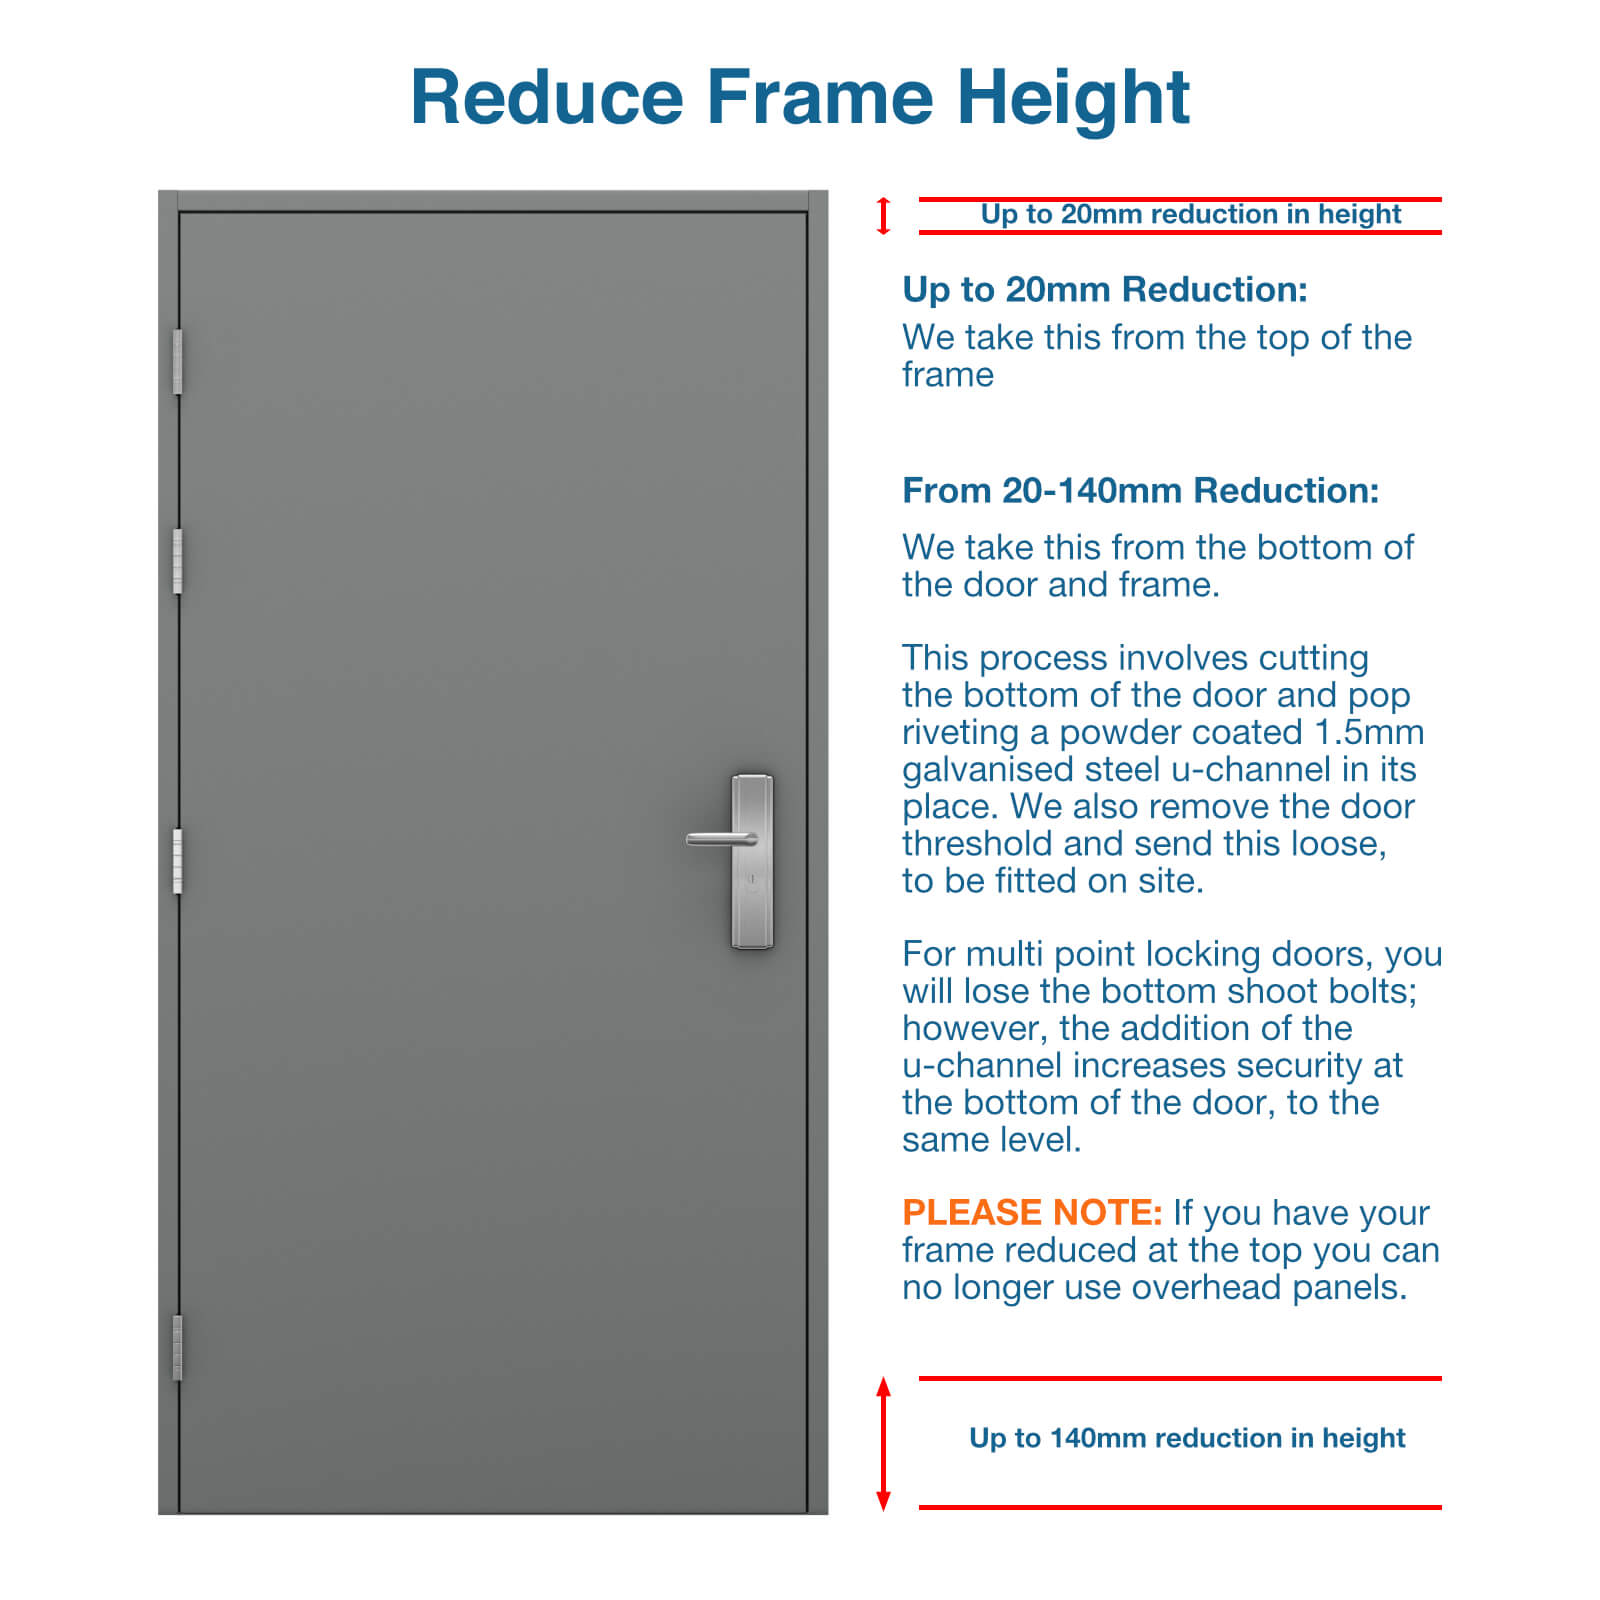 Information on how frame height is reduced on the cut down service